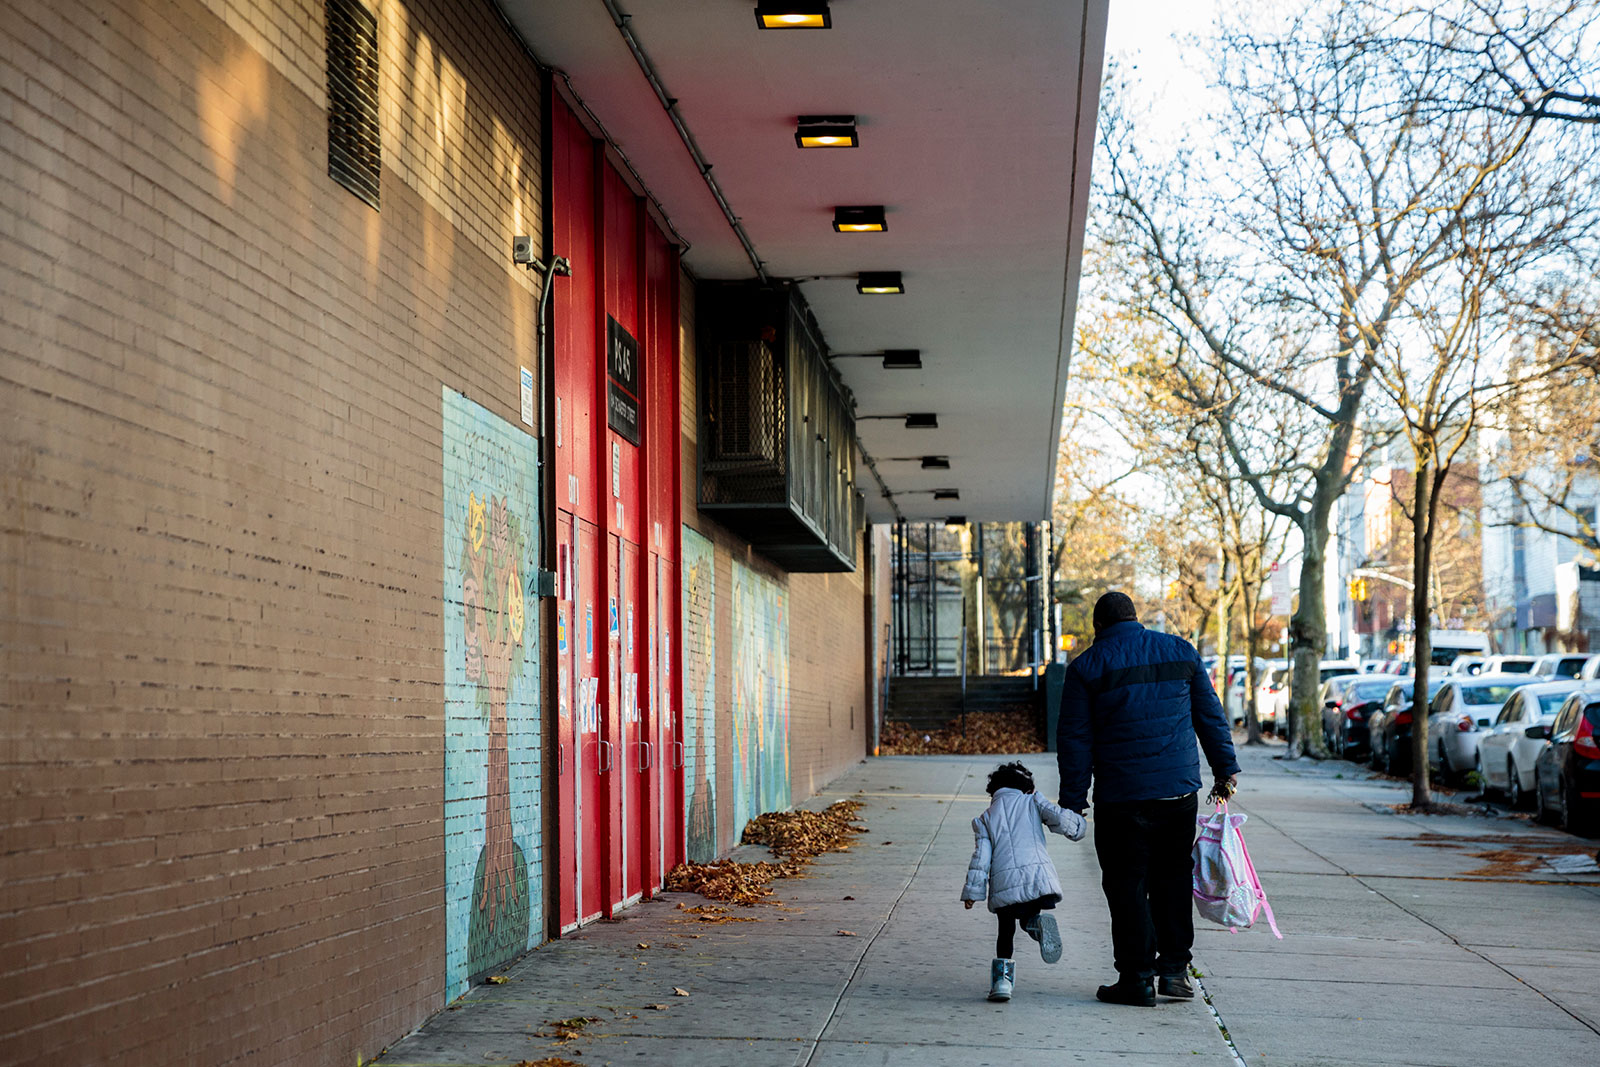 A parent walks their child to school in New York on November 16. New York City public schools grades 3-k, Pre-k, and K-5th grade will begin reopening for in-person learning Dec. 7, Mayor Bill de Blasio said.